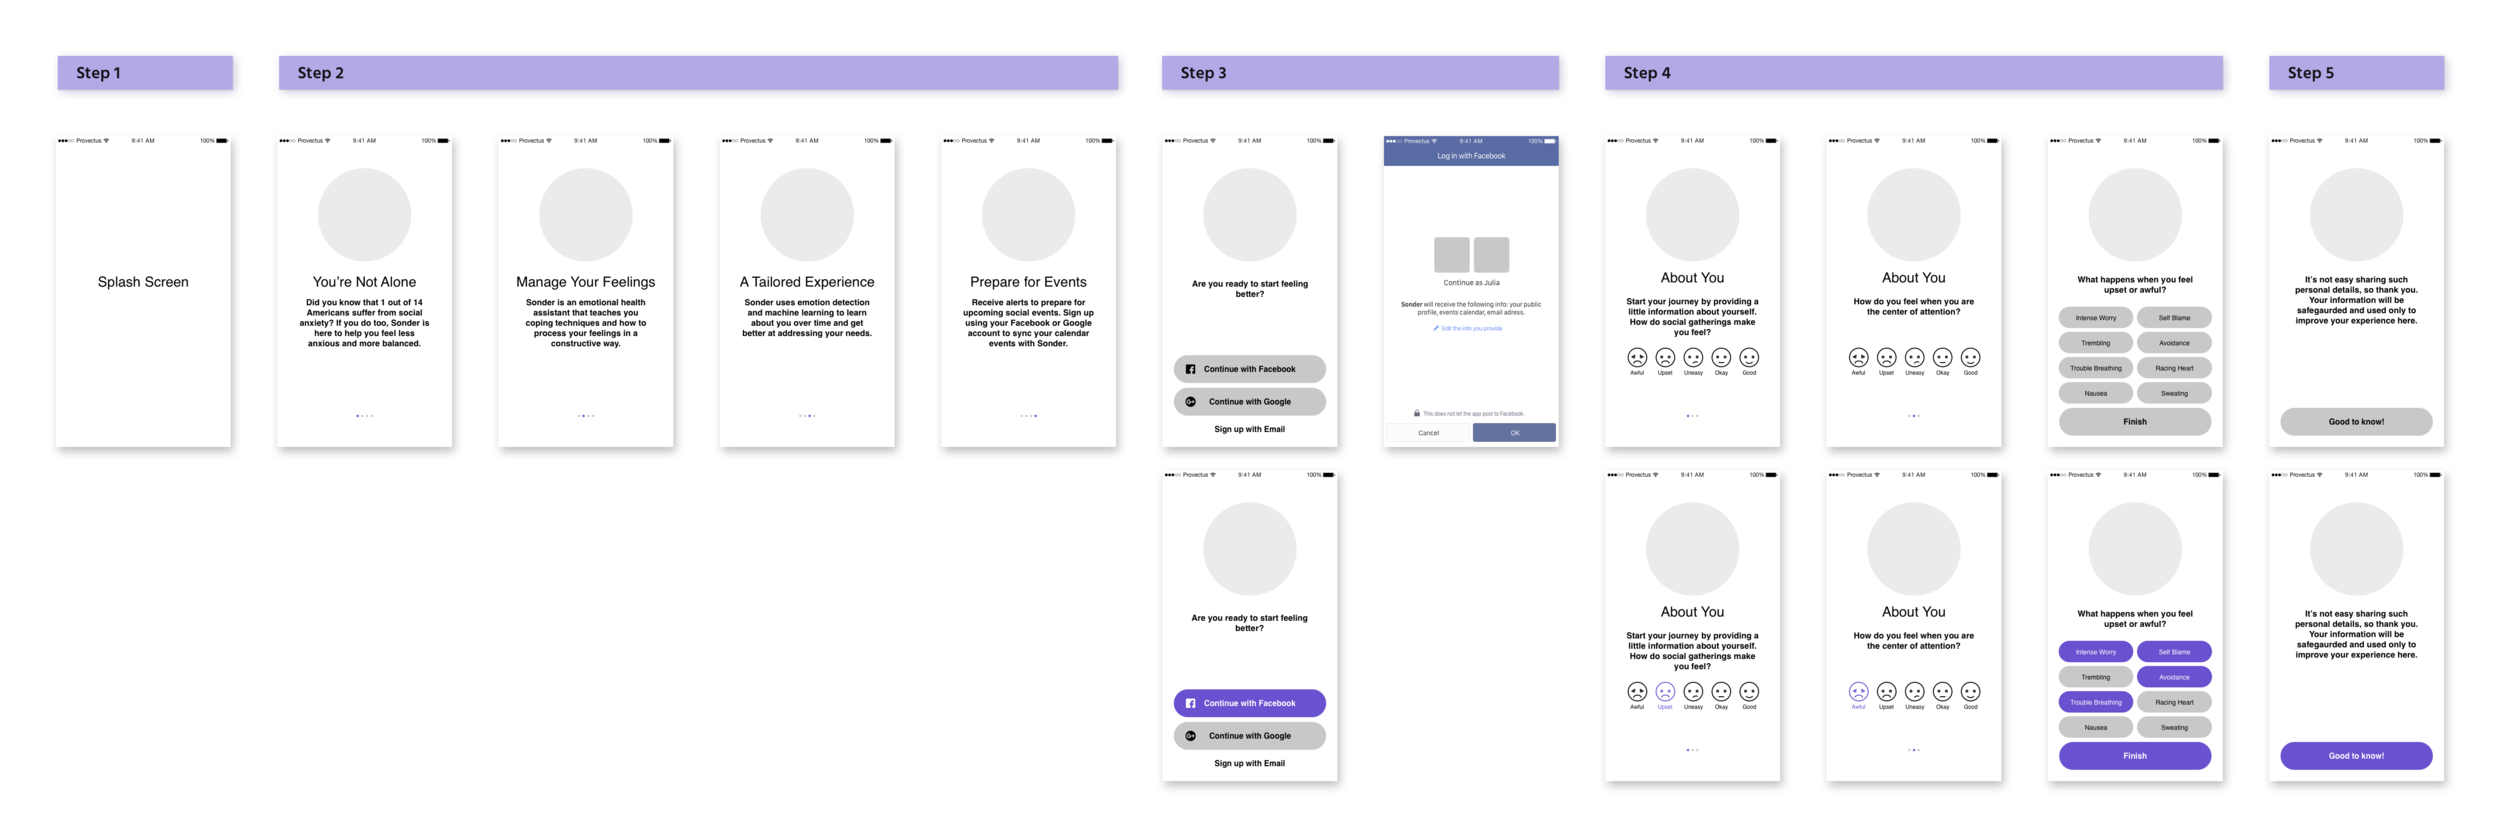 First Use Flow Wireframe_Part 1.png